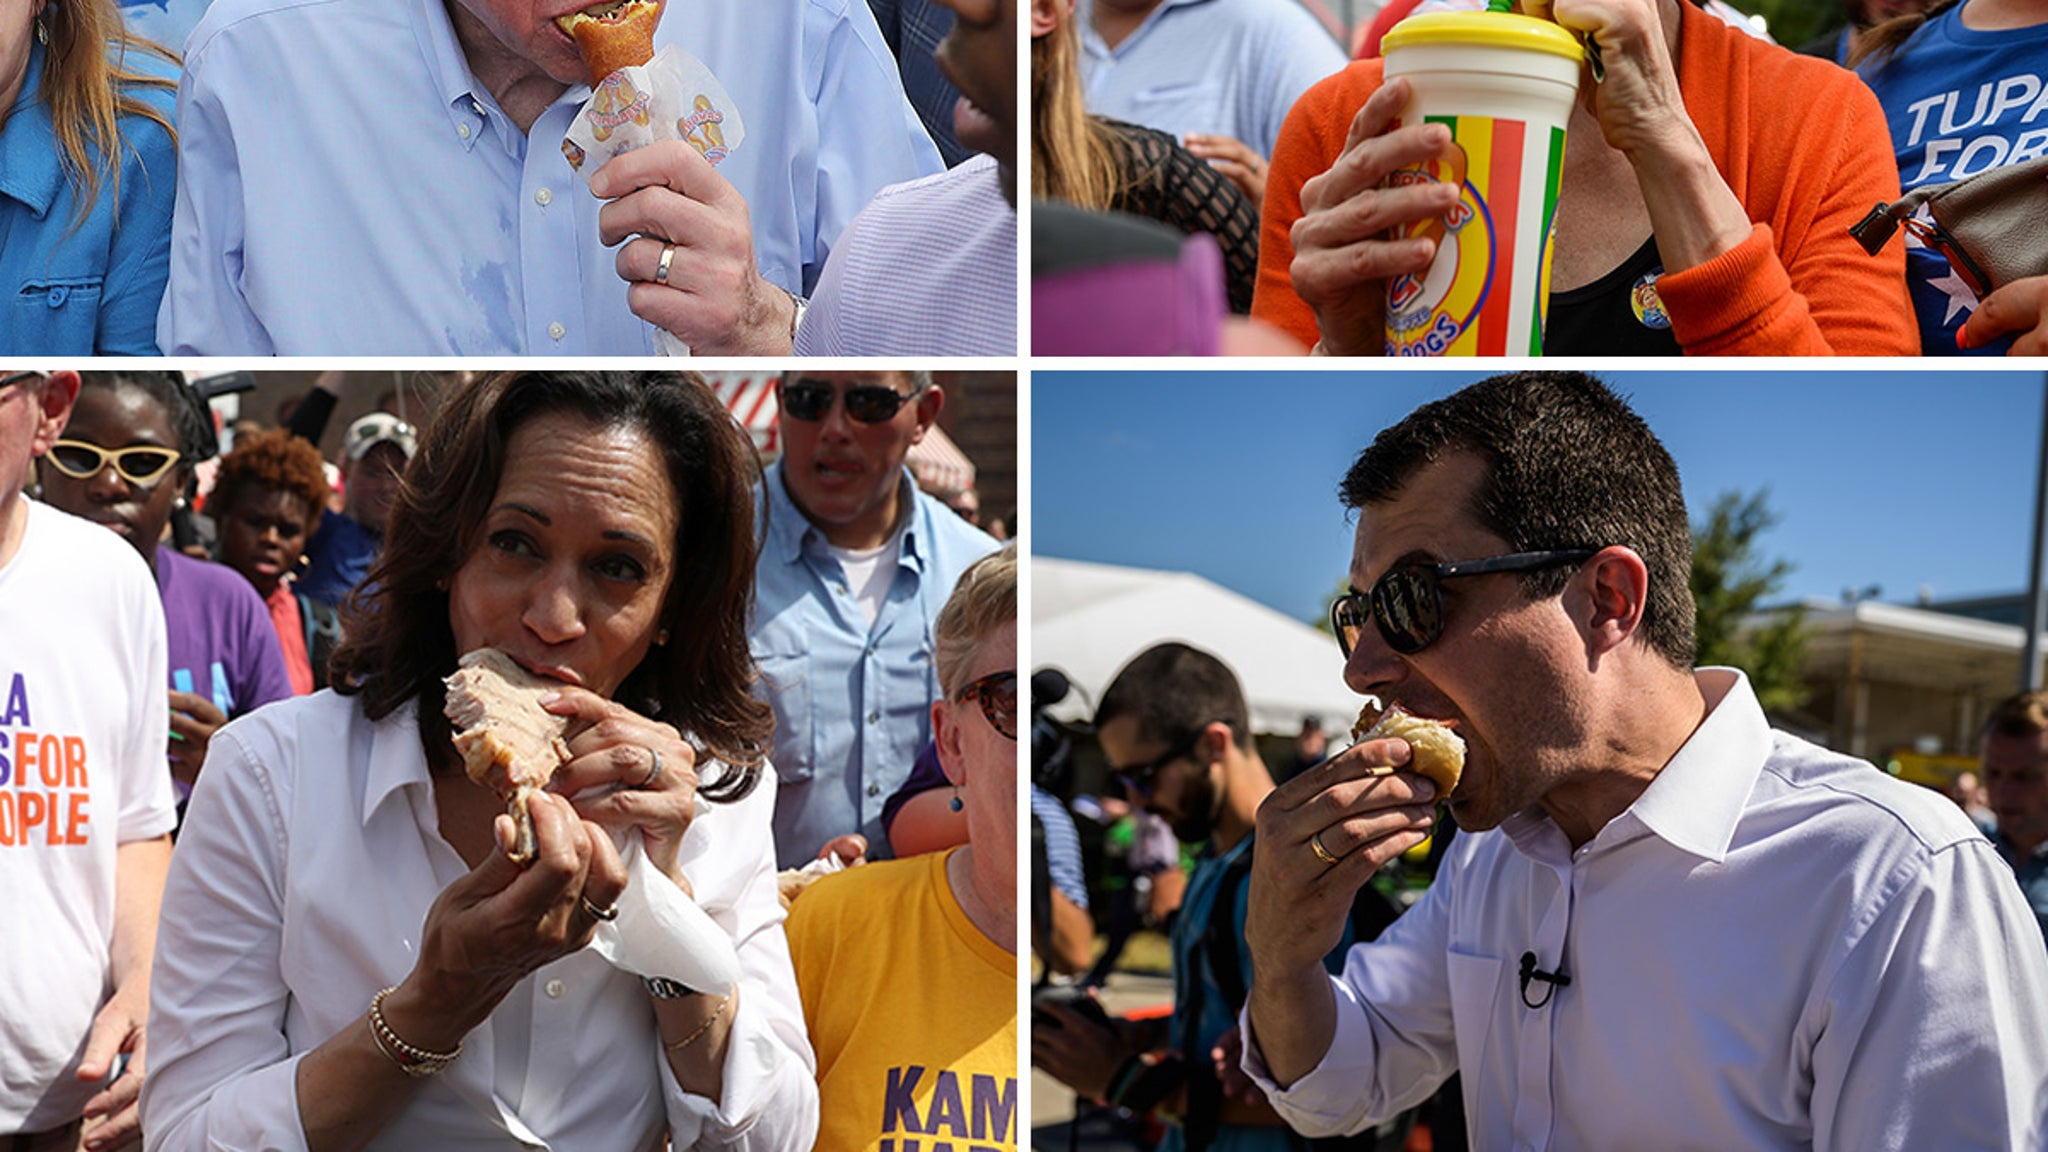 Gear Up for Holiday Feasts with These Prez Candidates Snacking - EpicNews